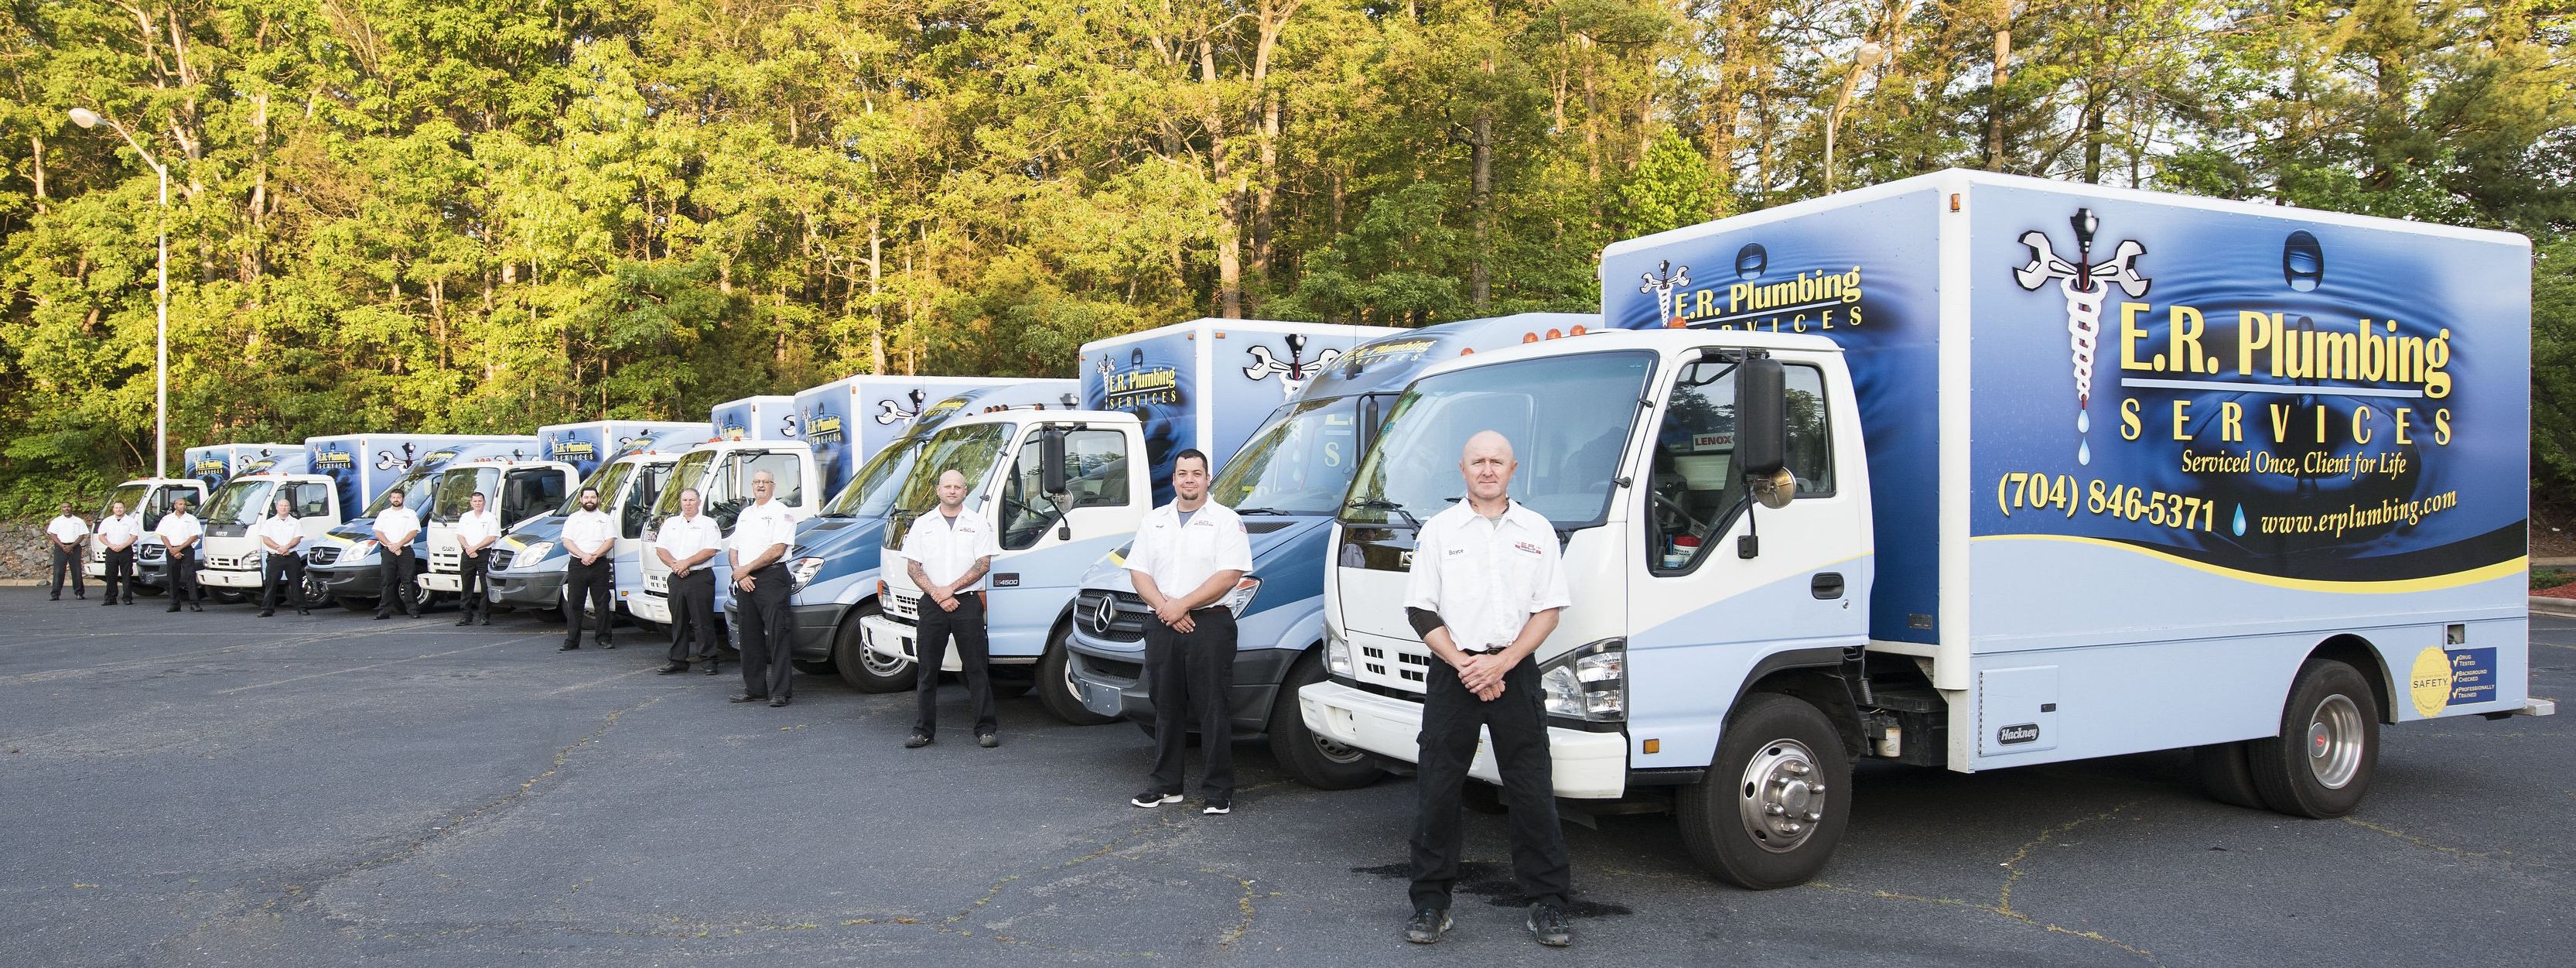 Charlotte residential plumbing company